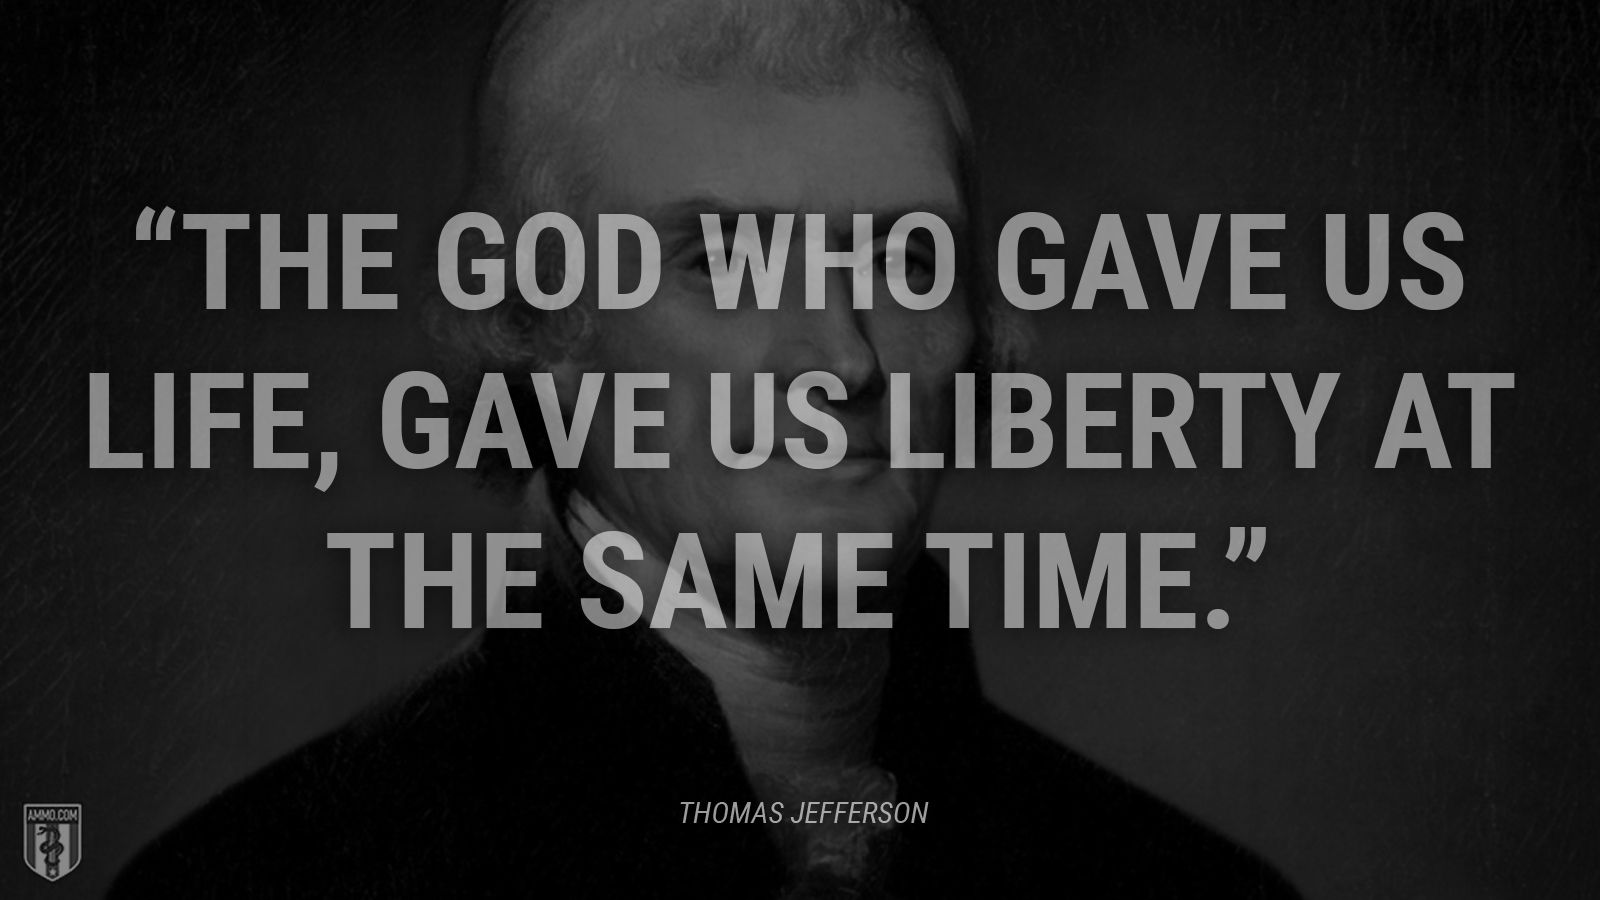 """The God who gave us life, gave us liberty at the same time."" - Thomas Jefferson"